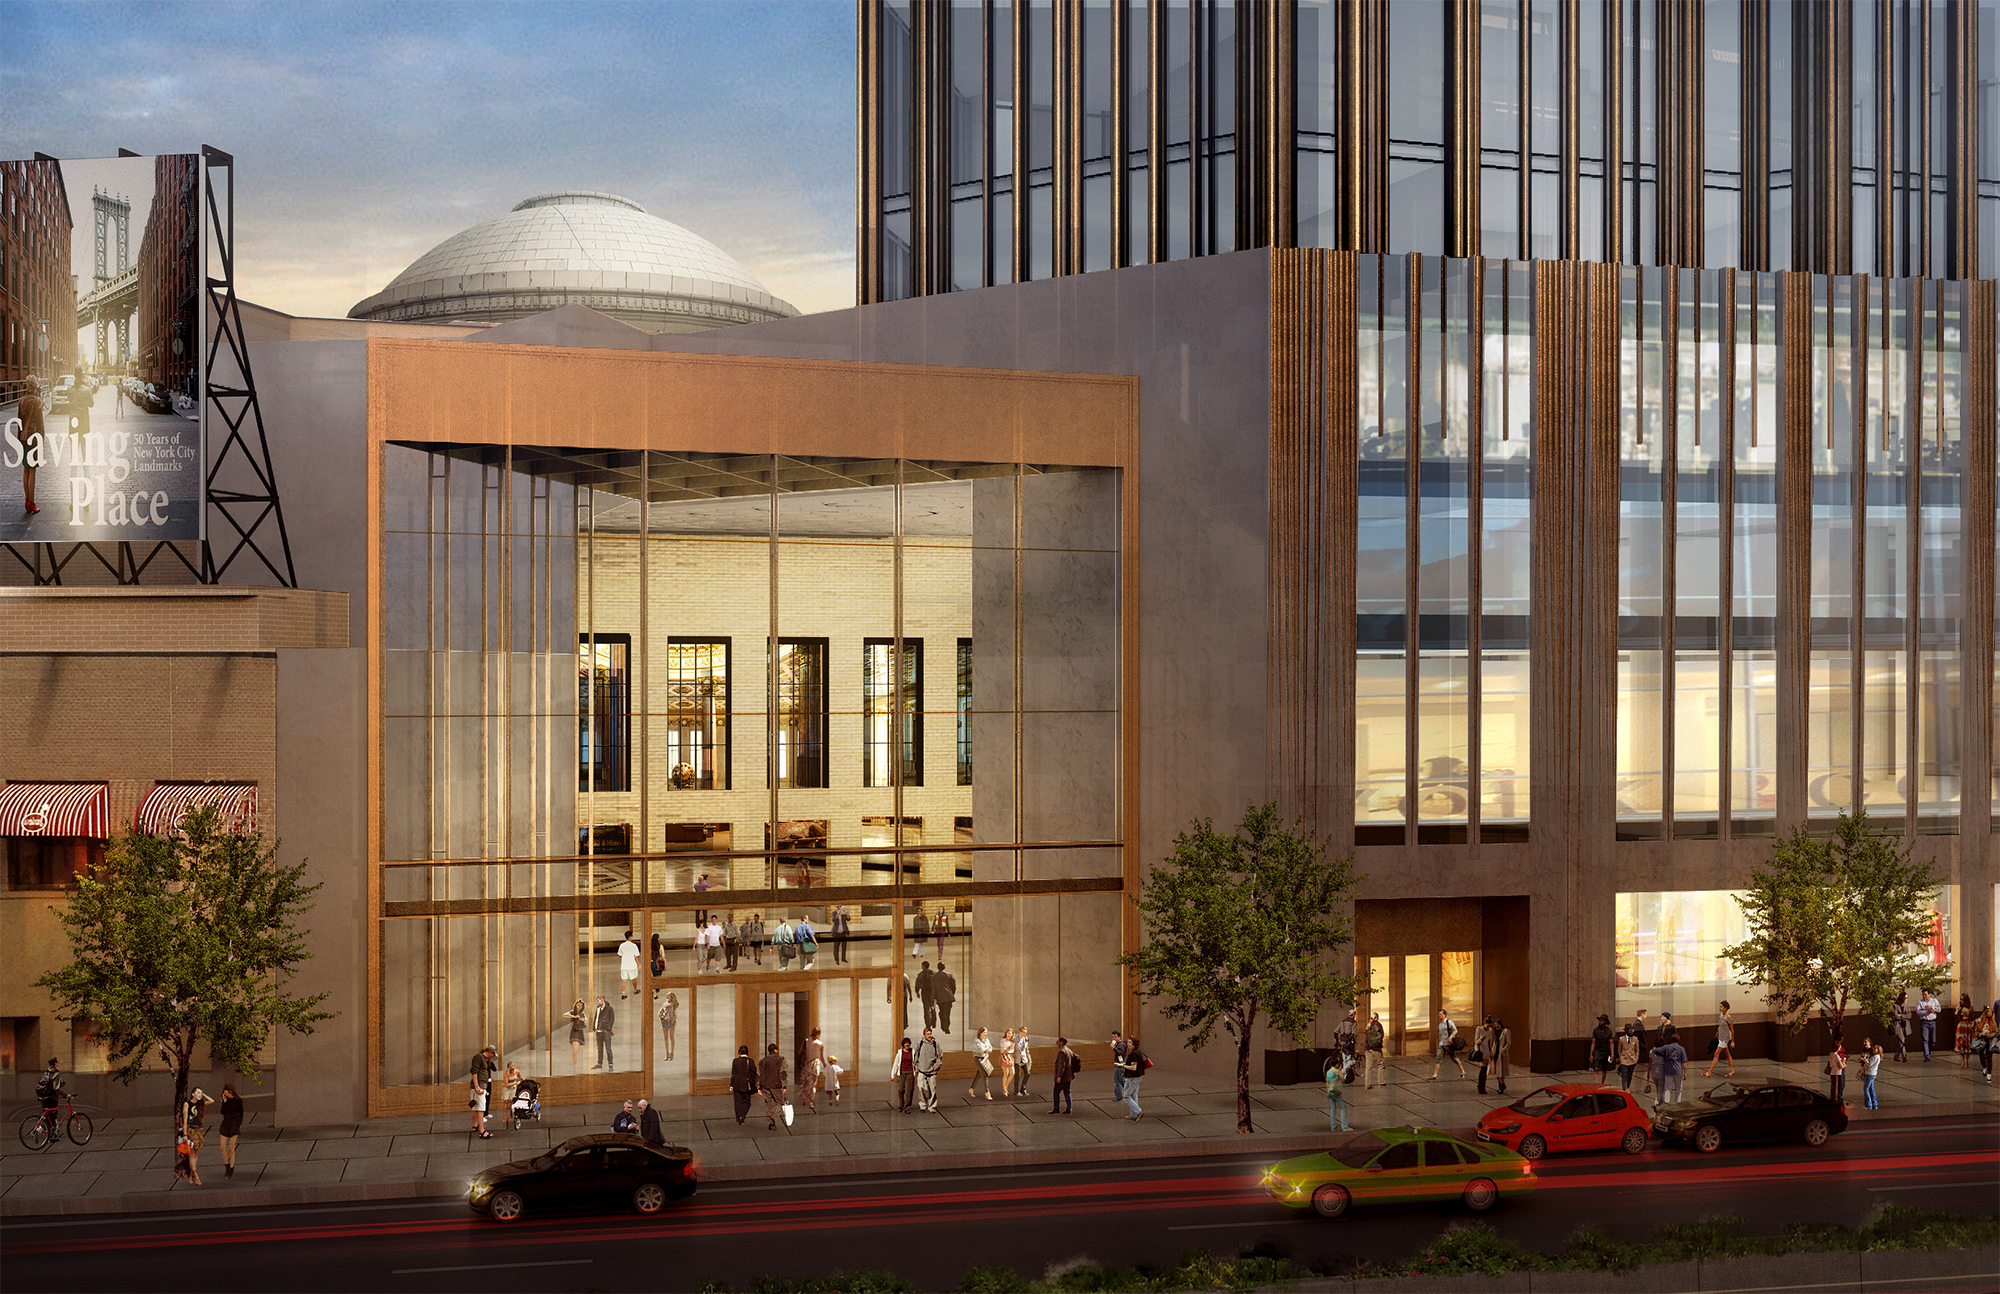 Rendering of 340 Flatbush Avenue Extension, showing the atrium that would connect to the banking hall at 9 DeKalb Avenue. Credit: SHoP